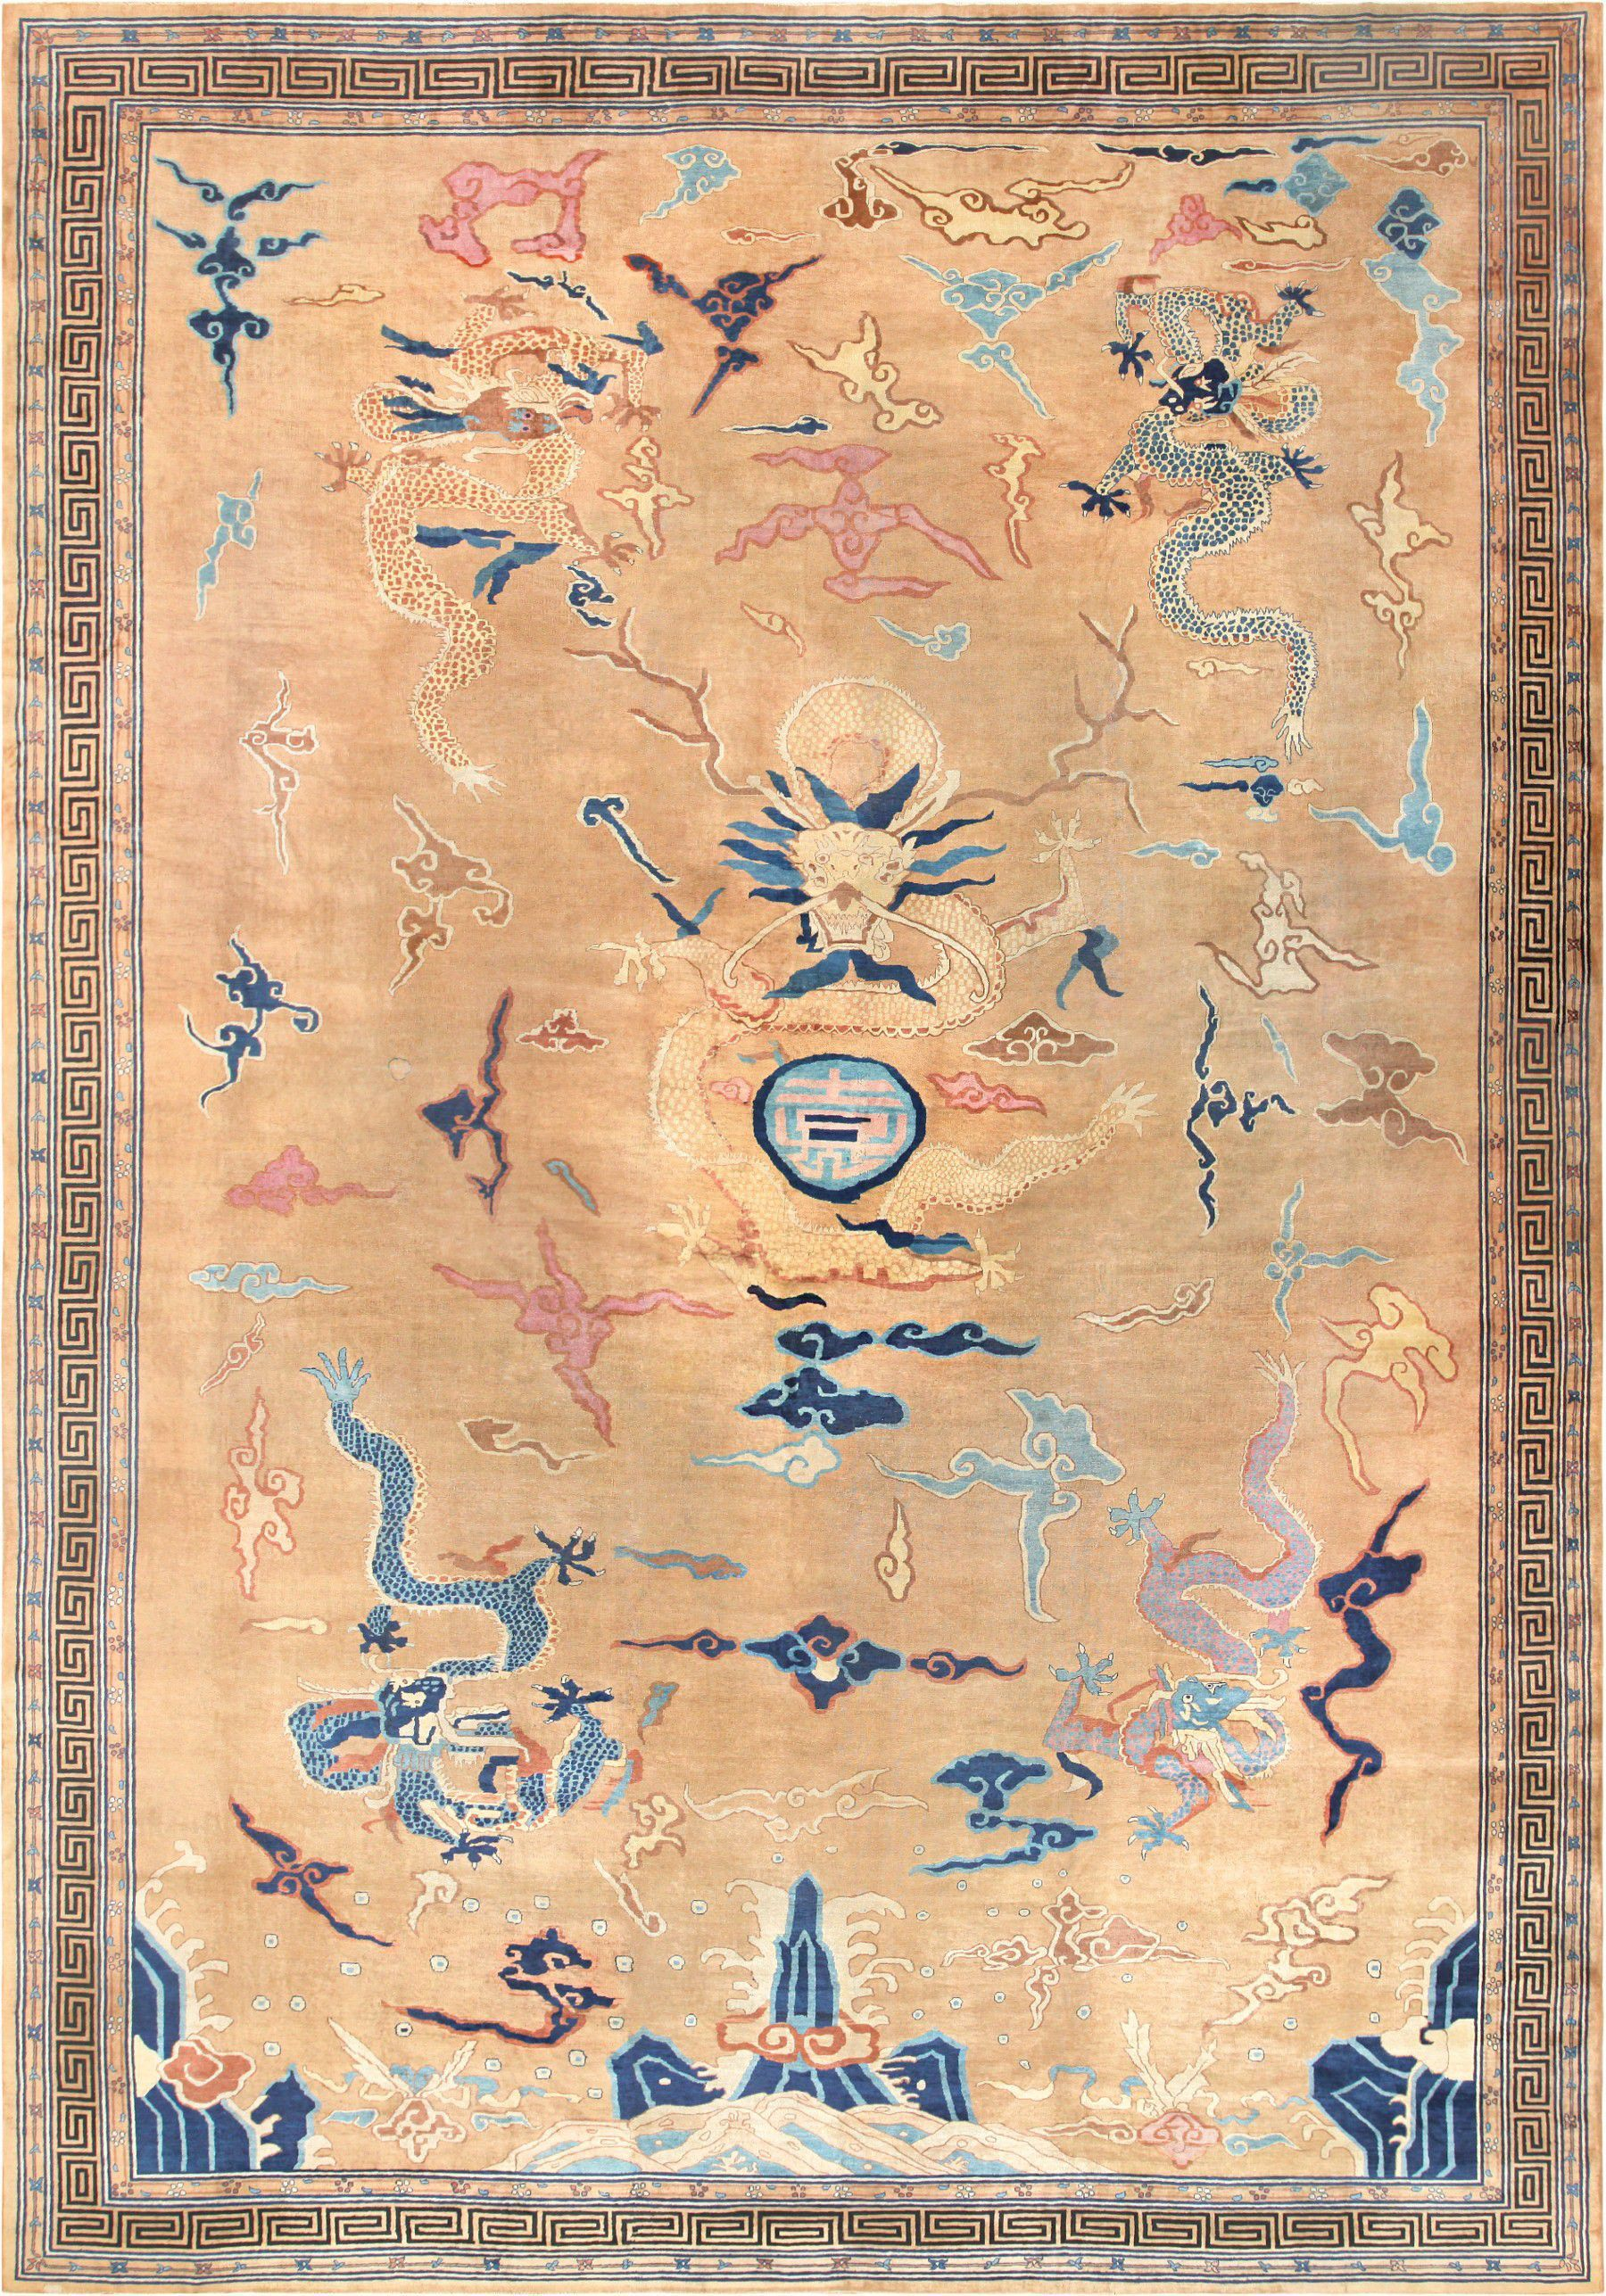 View Our Collection Of Antique Art Deco Chinese Rugs And Carpets This Is Offered By Nazmiyal In Manhattan New York City